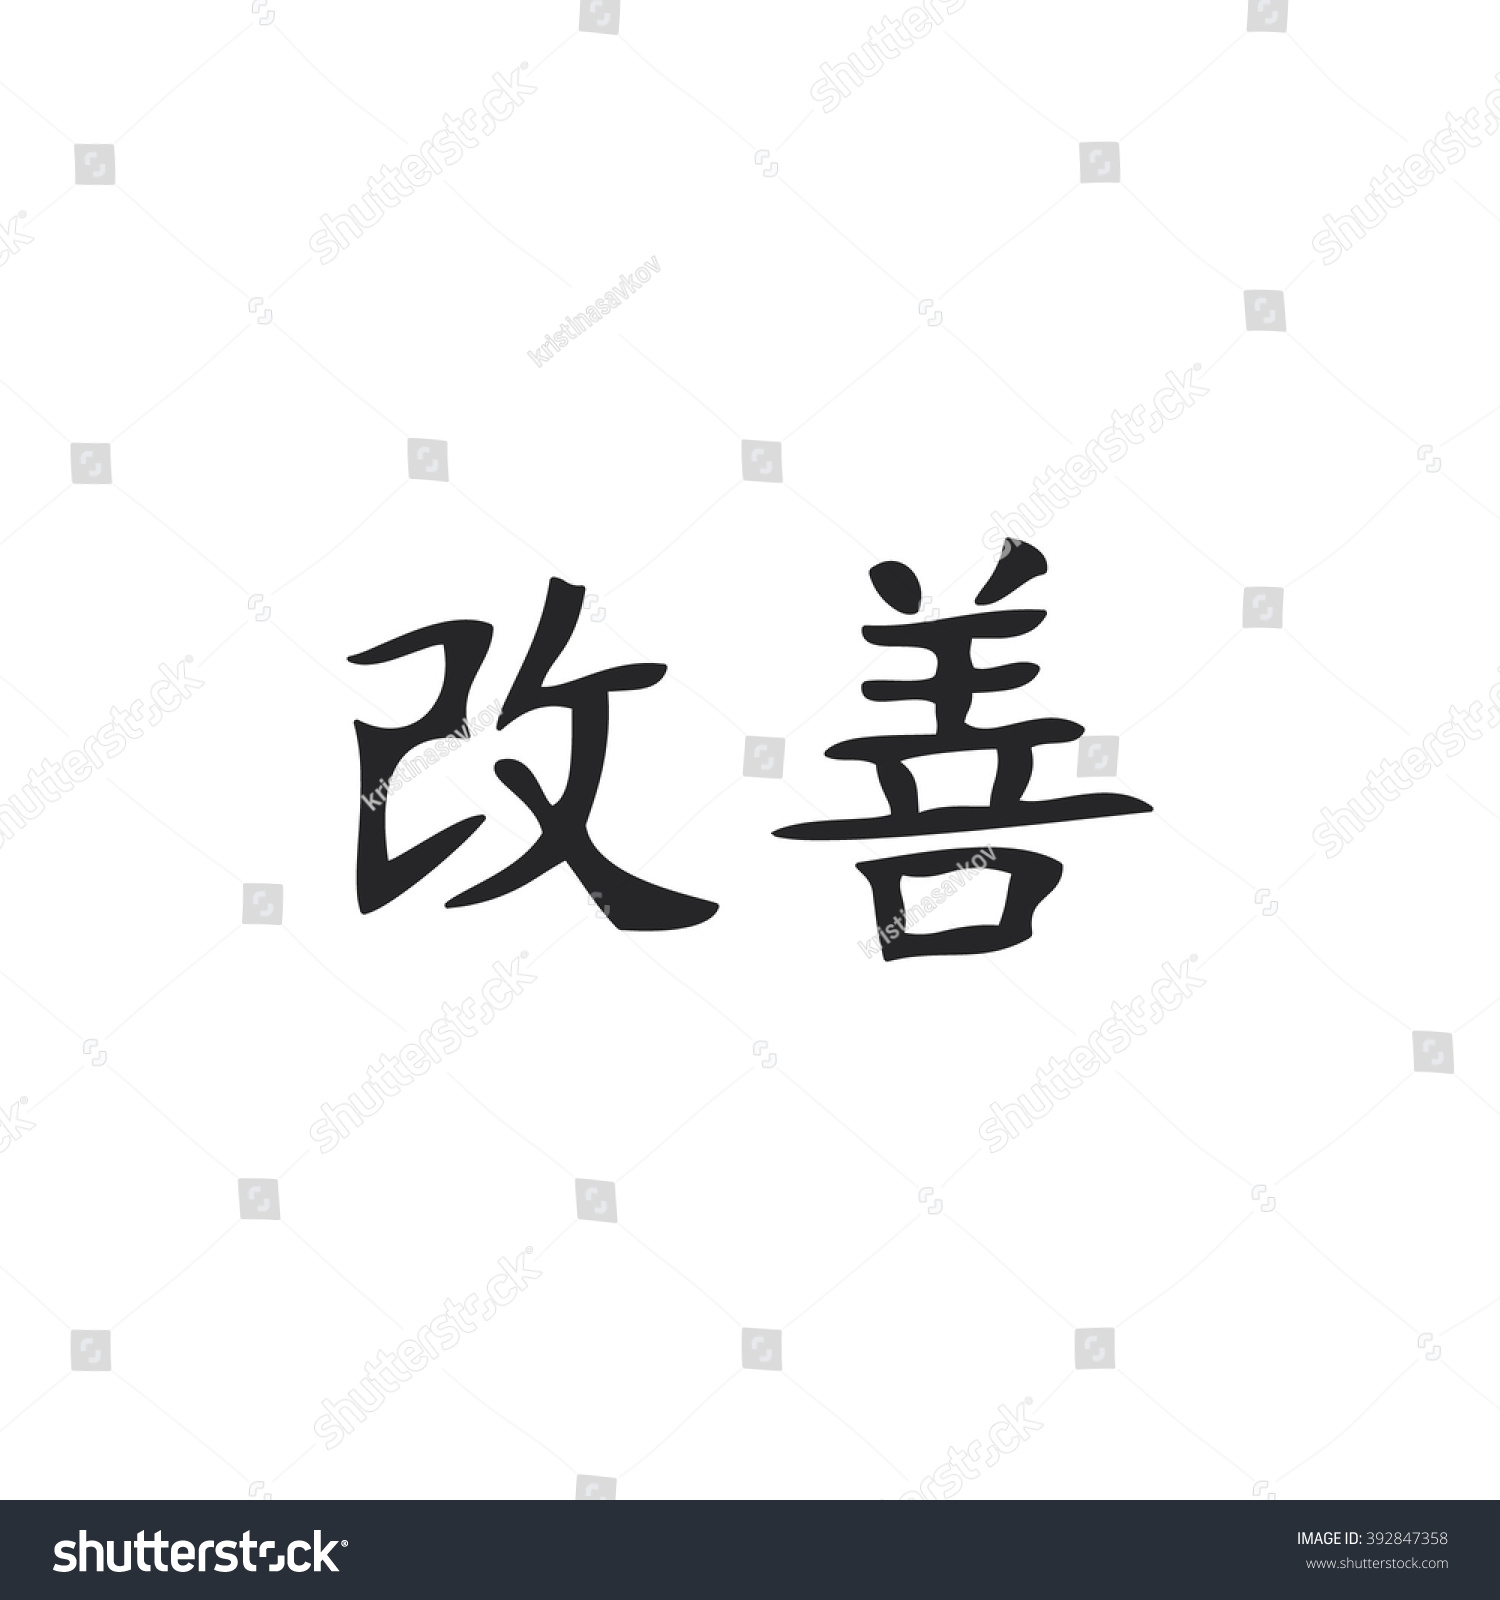 Japanese Symbol Improvement Kaizen Vector Symbol Stock Photo Photo